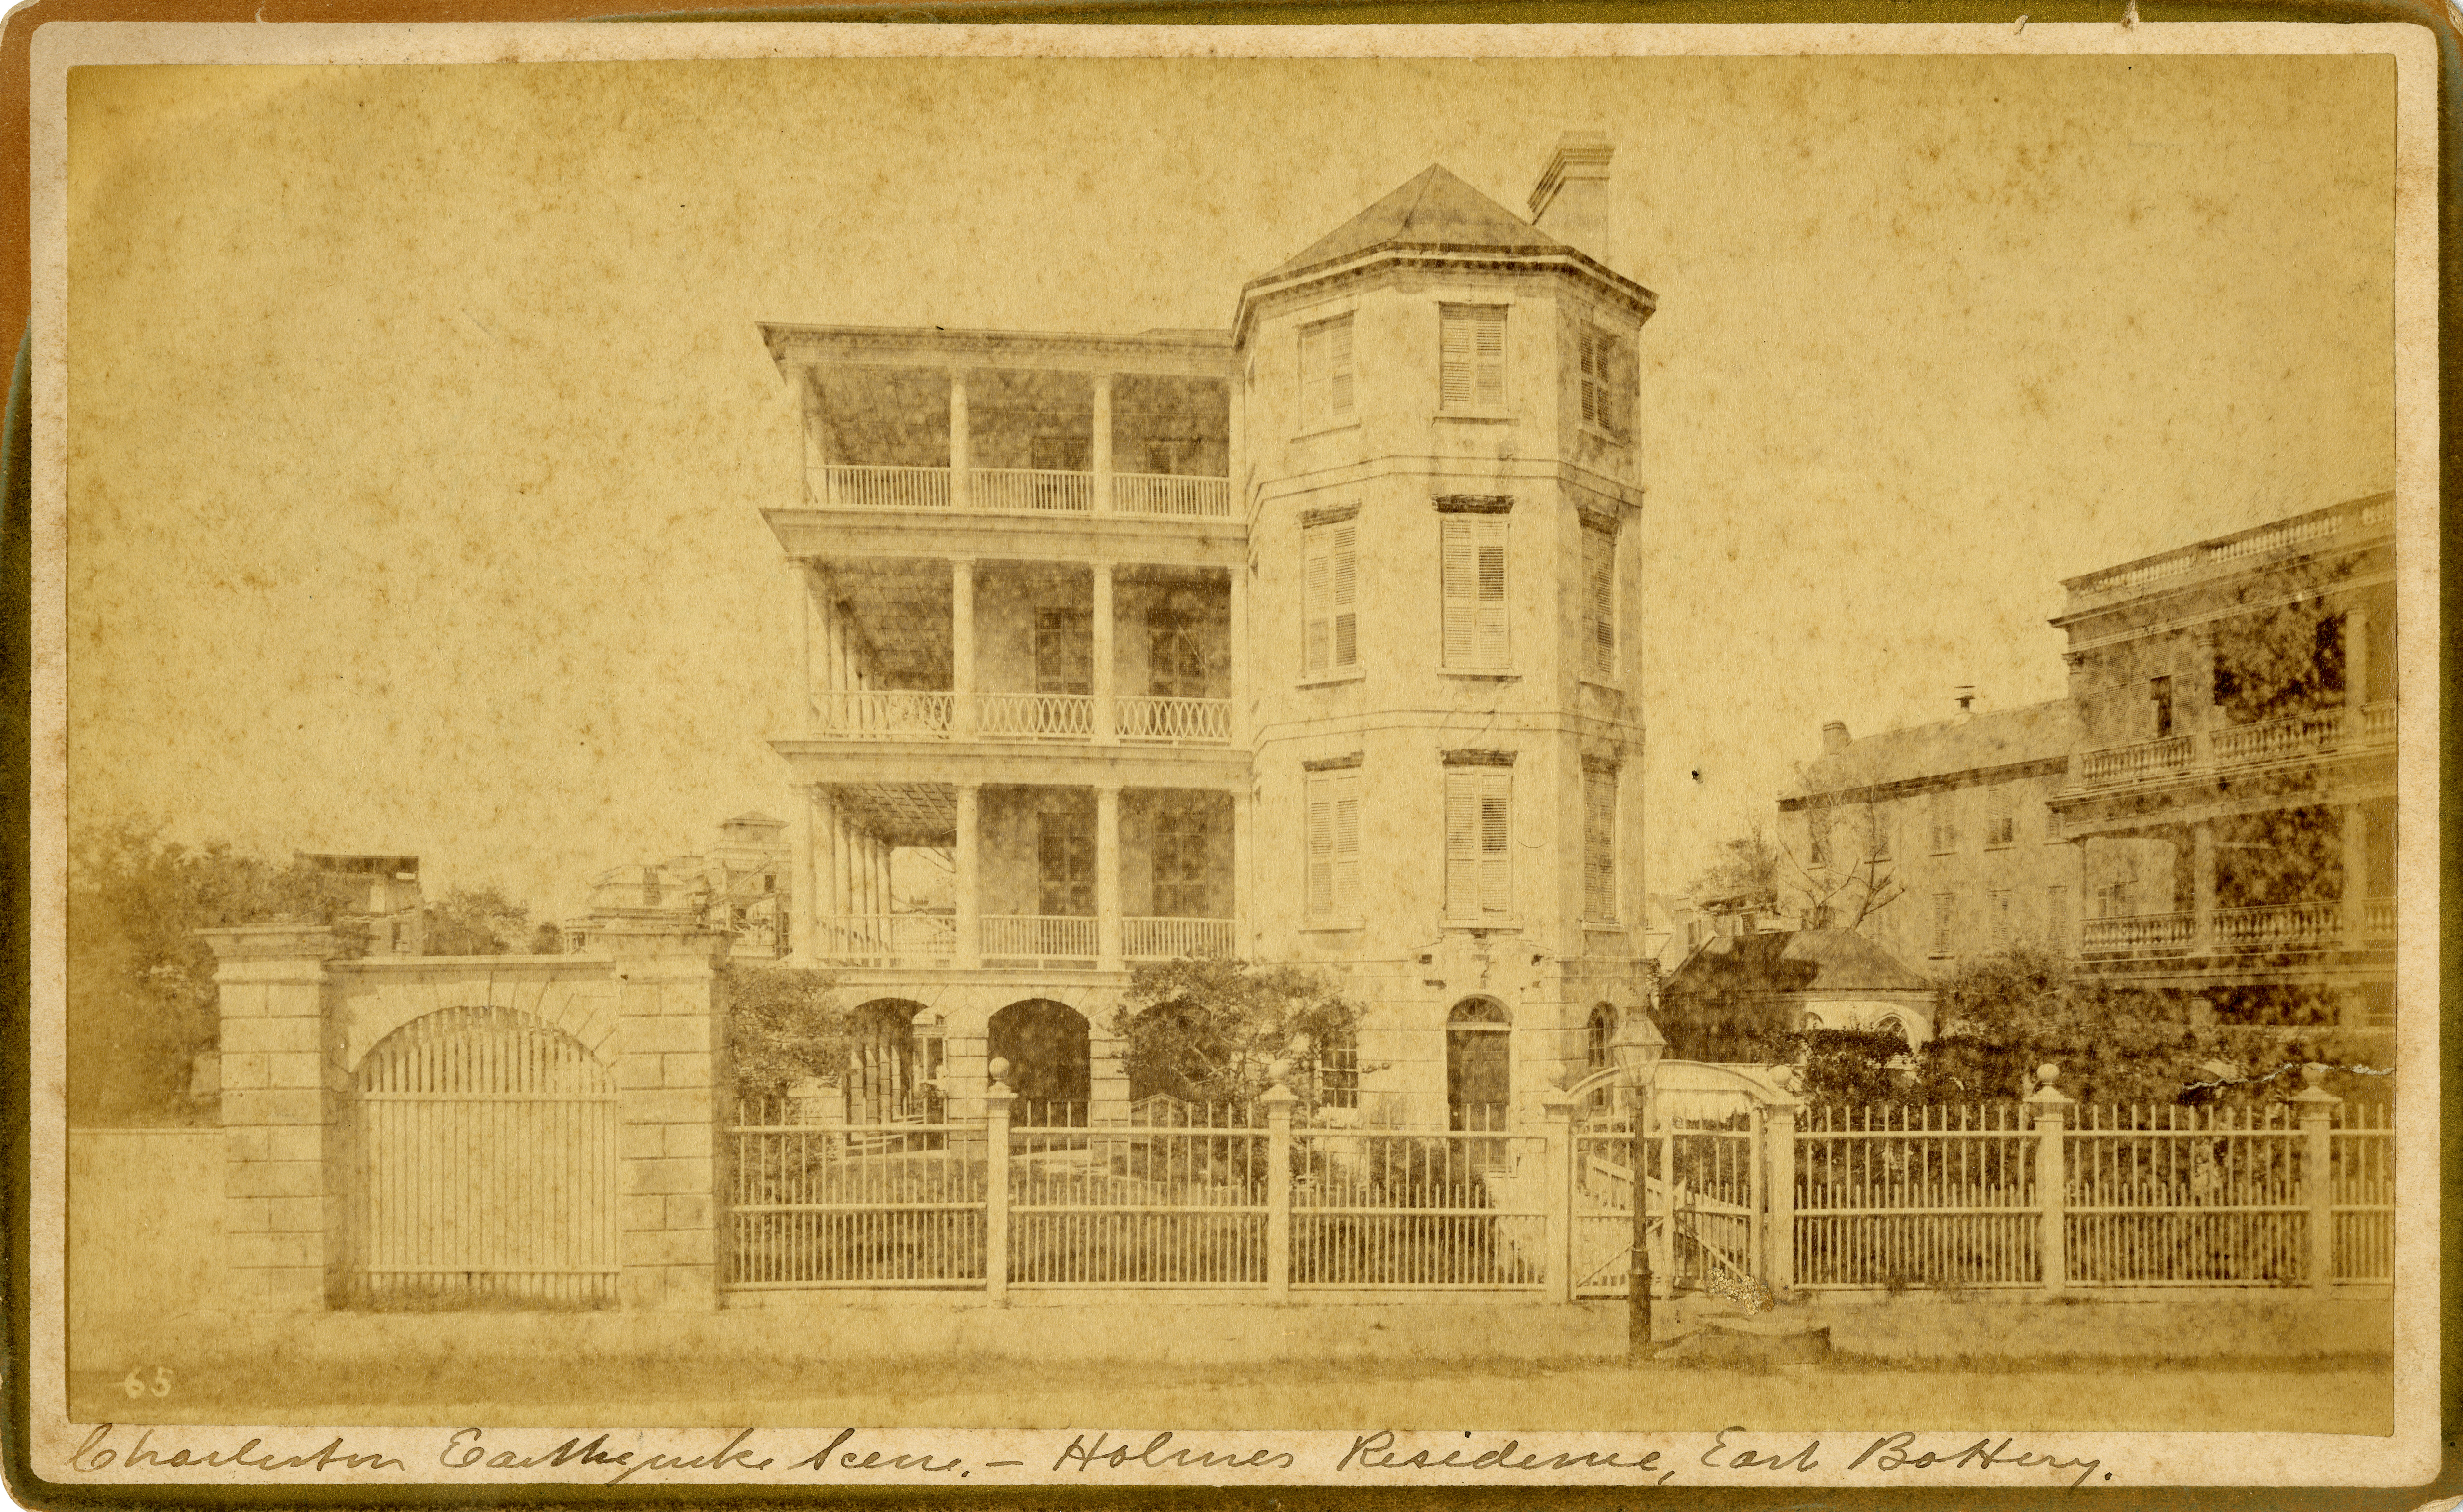 East Battery, Holmes residence